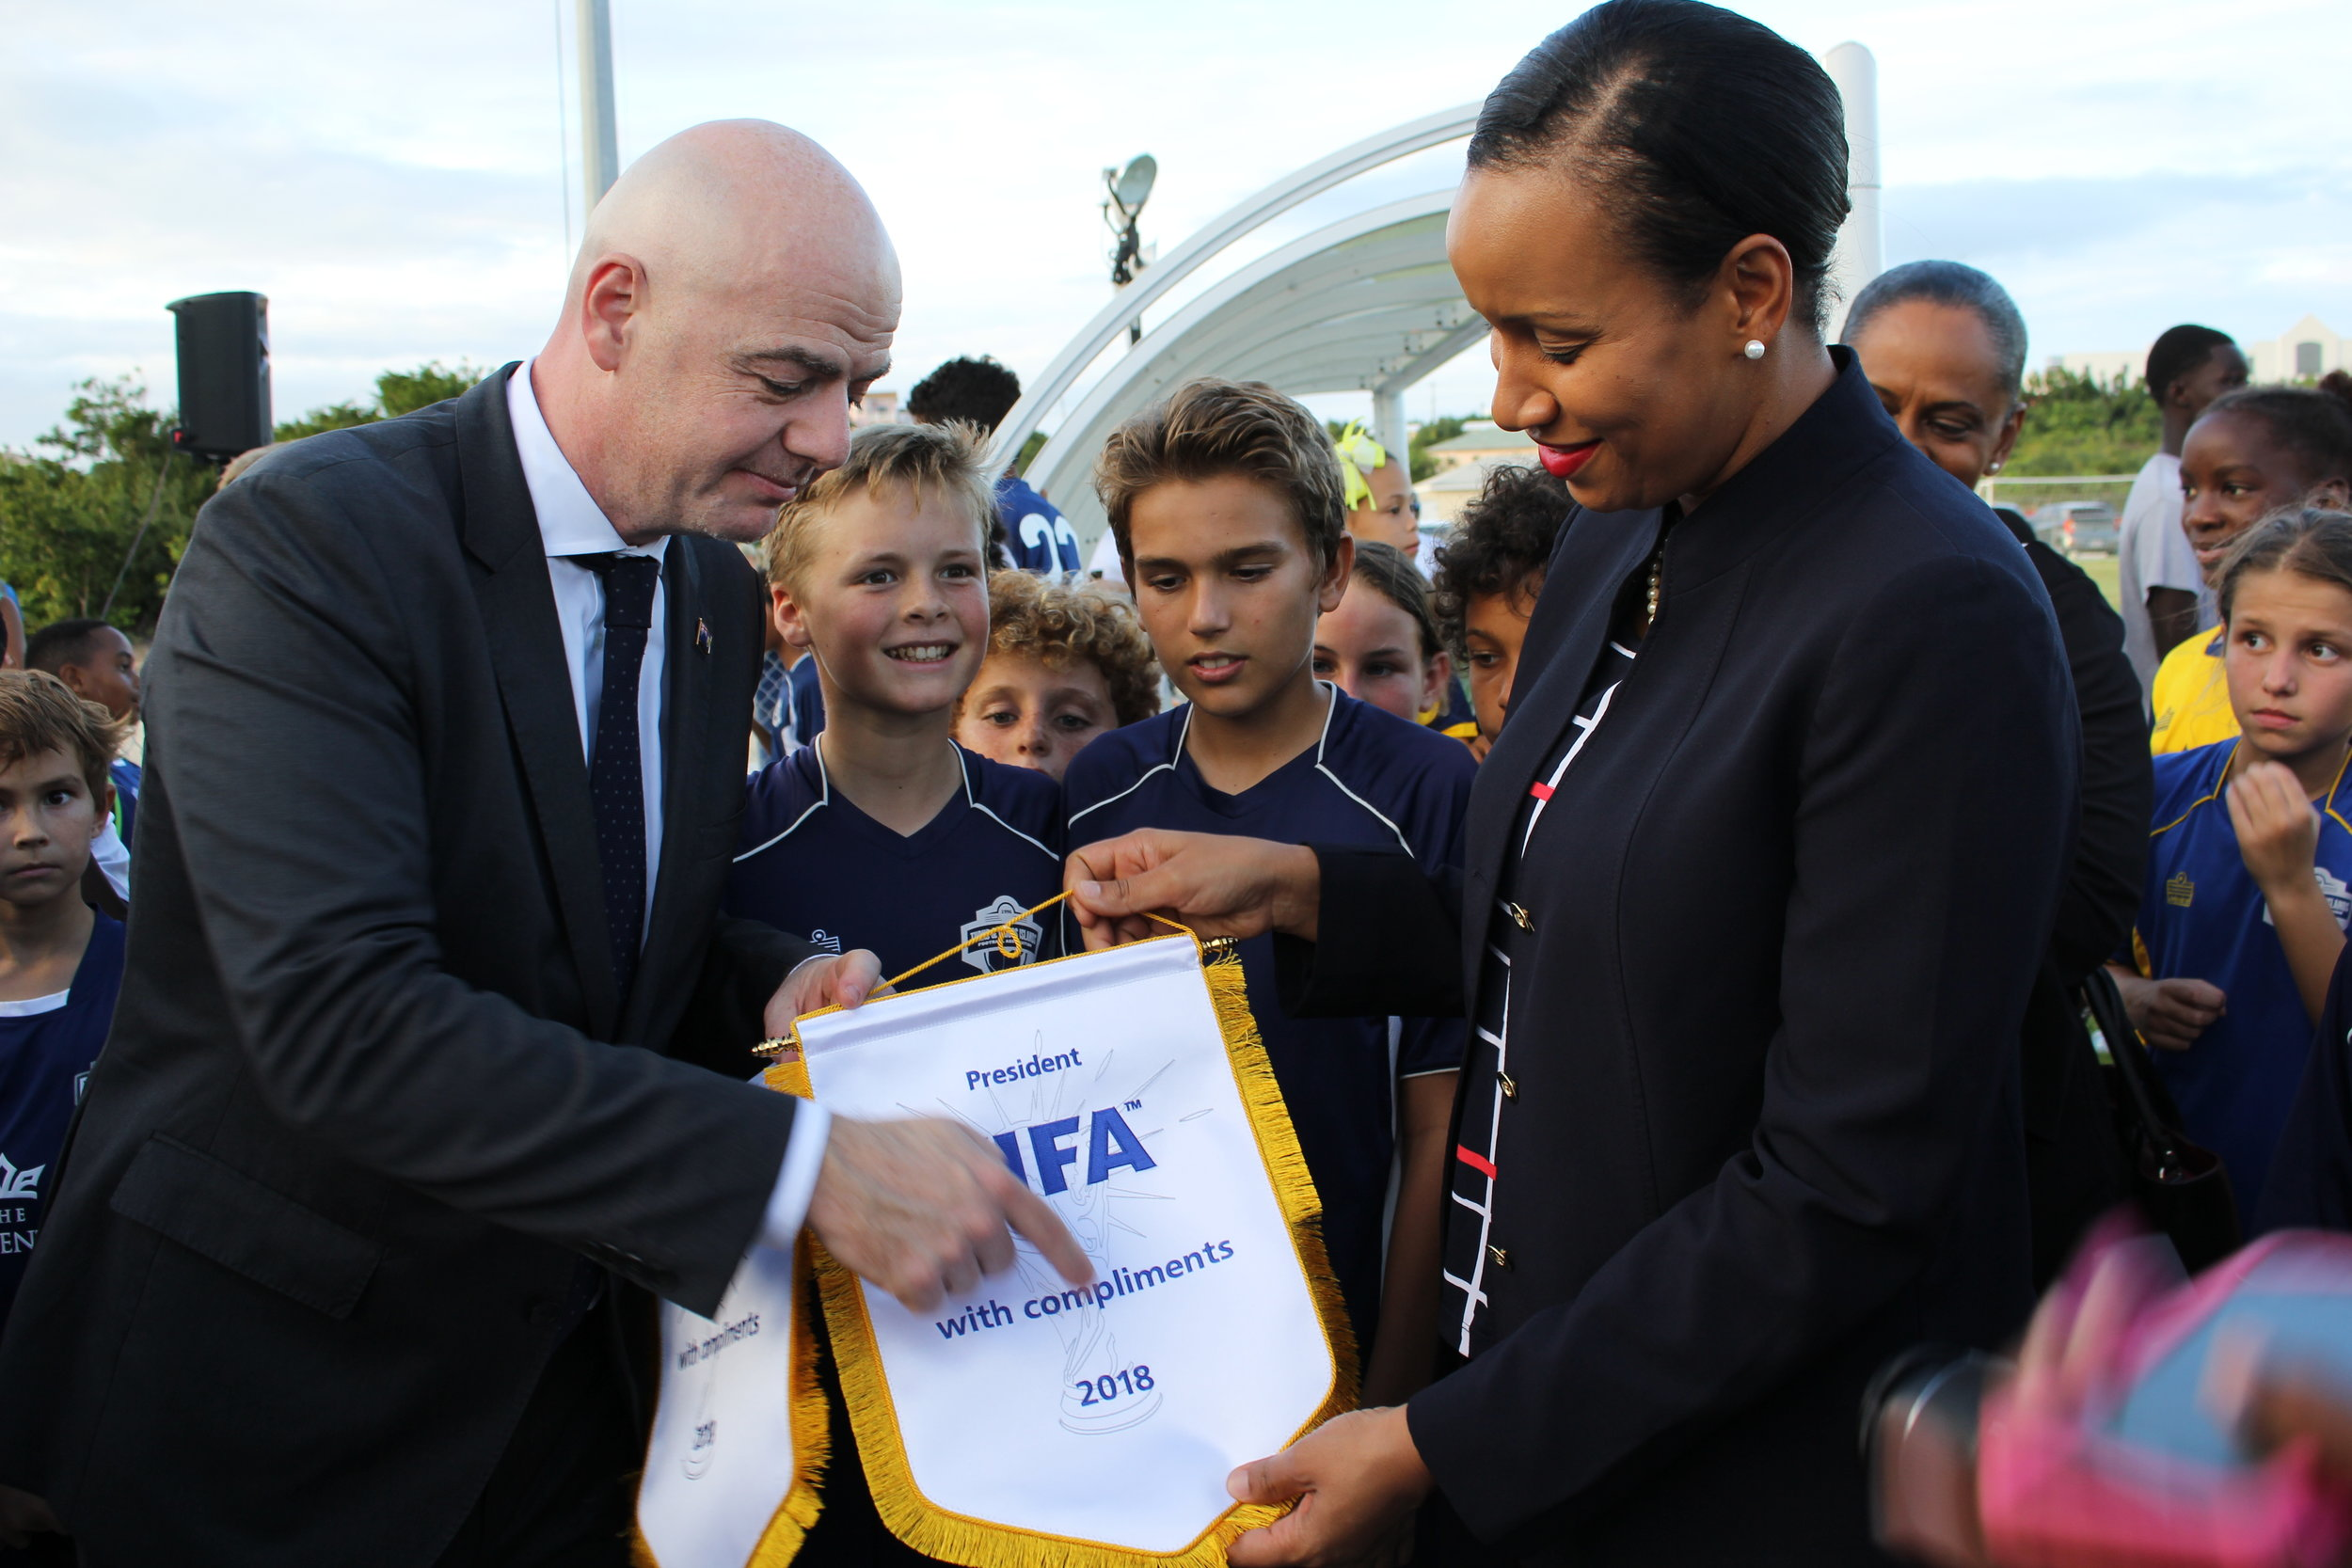 FIFA President Gianni Infantino gifting Deputy Governor Her Excellency Hon. Anya Williams with a FIFA Pennant